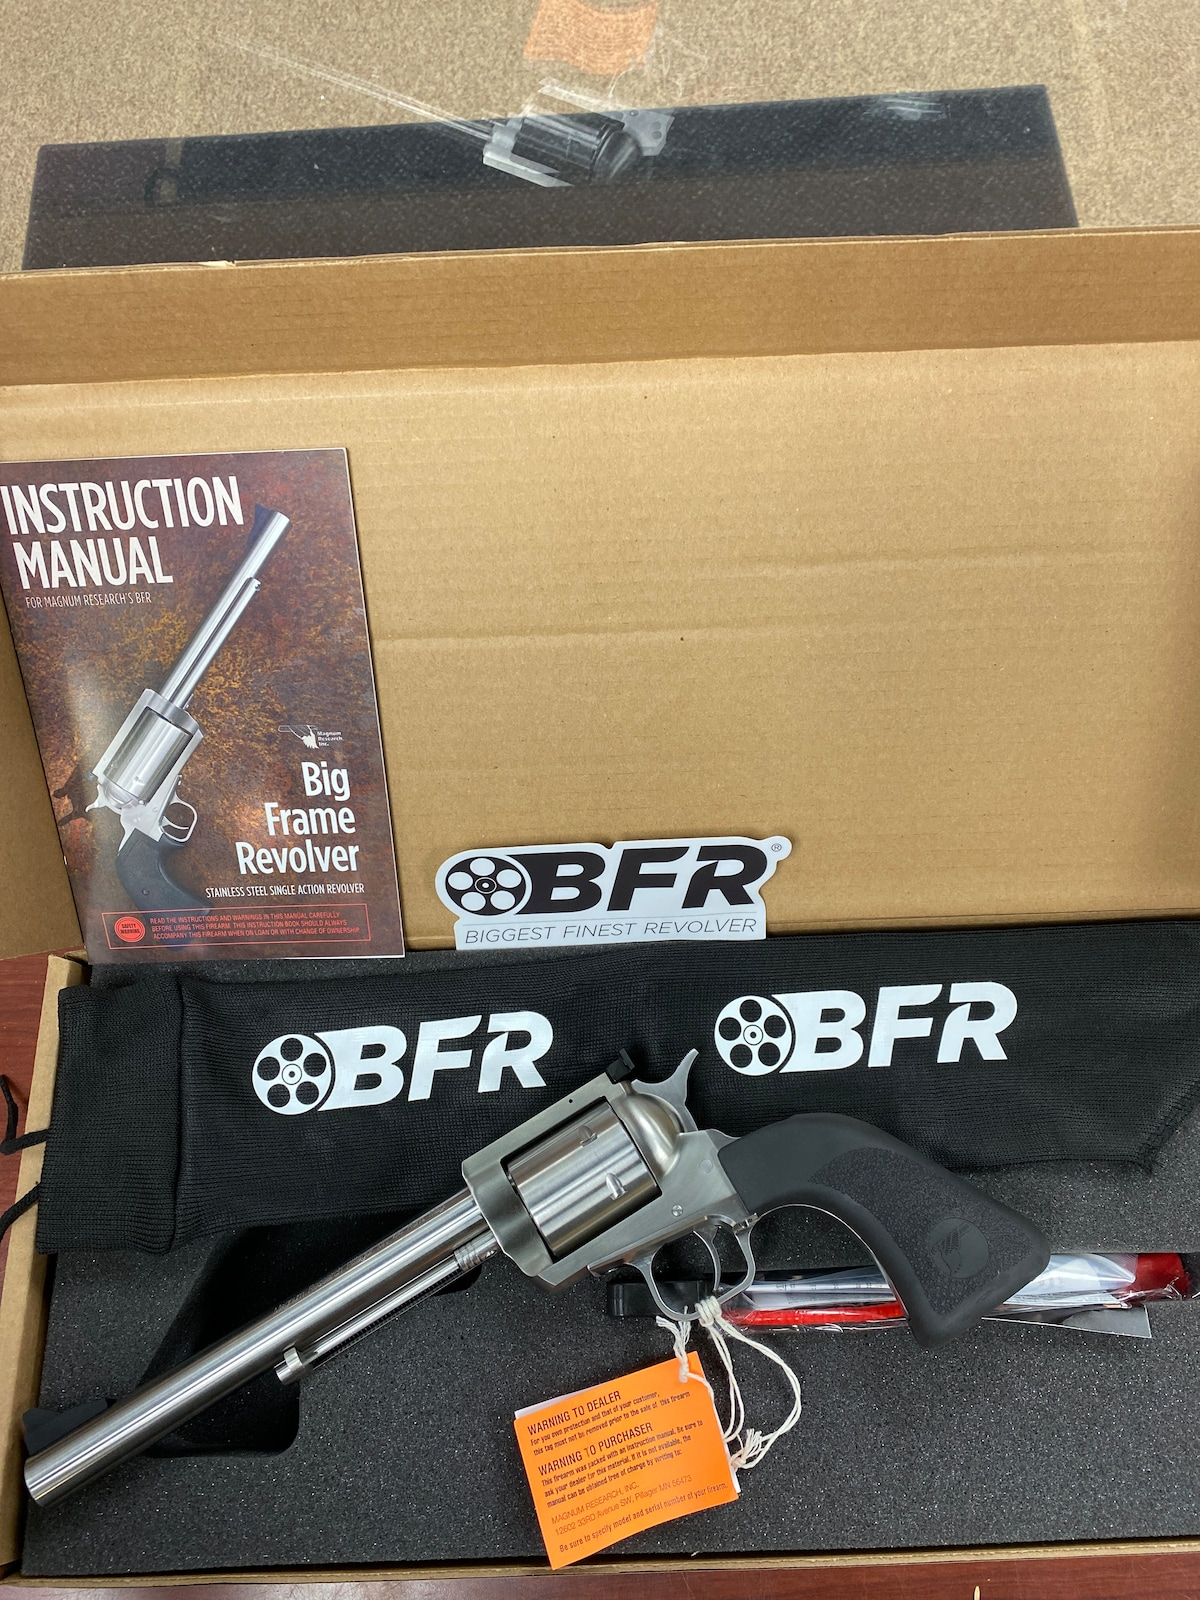 MAGNUM RESEARCH BFR bfr44mag7-6 6 rounds!